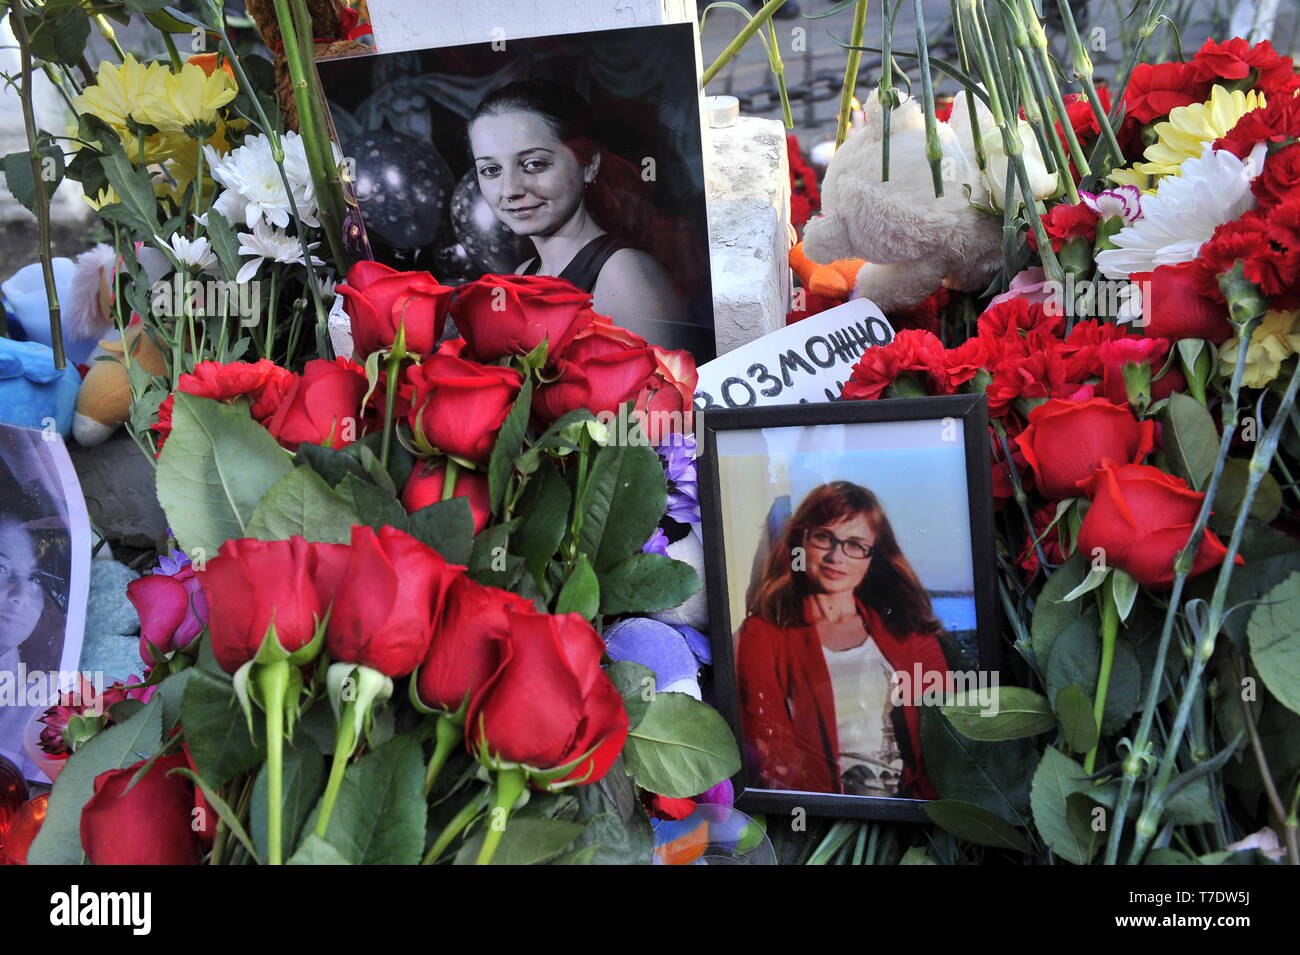 MURMANSK, RUSSIA - MAY 6, 2019: Flowers at a monument to the intervention victims in memory of the victims of an aircraft accident at Moscow's Sheremetyevo Airport. An Aeroflot Sukhoi Superjet-100 (SSJ100) passenger aircraft (registration RA-89098) left Sheremetyevo for Murmansk on May 5 at around 6pm Moscow time, returned and made an emergency landing at around 6.40pm due to a fire aboard; the crash landing and the fire have resulted in multiple casualties. Lev Fedoseyev/TASS - Stock Image